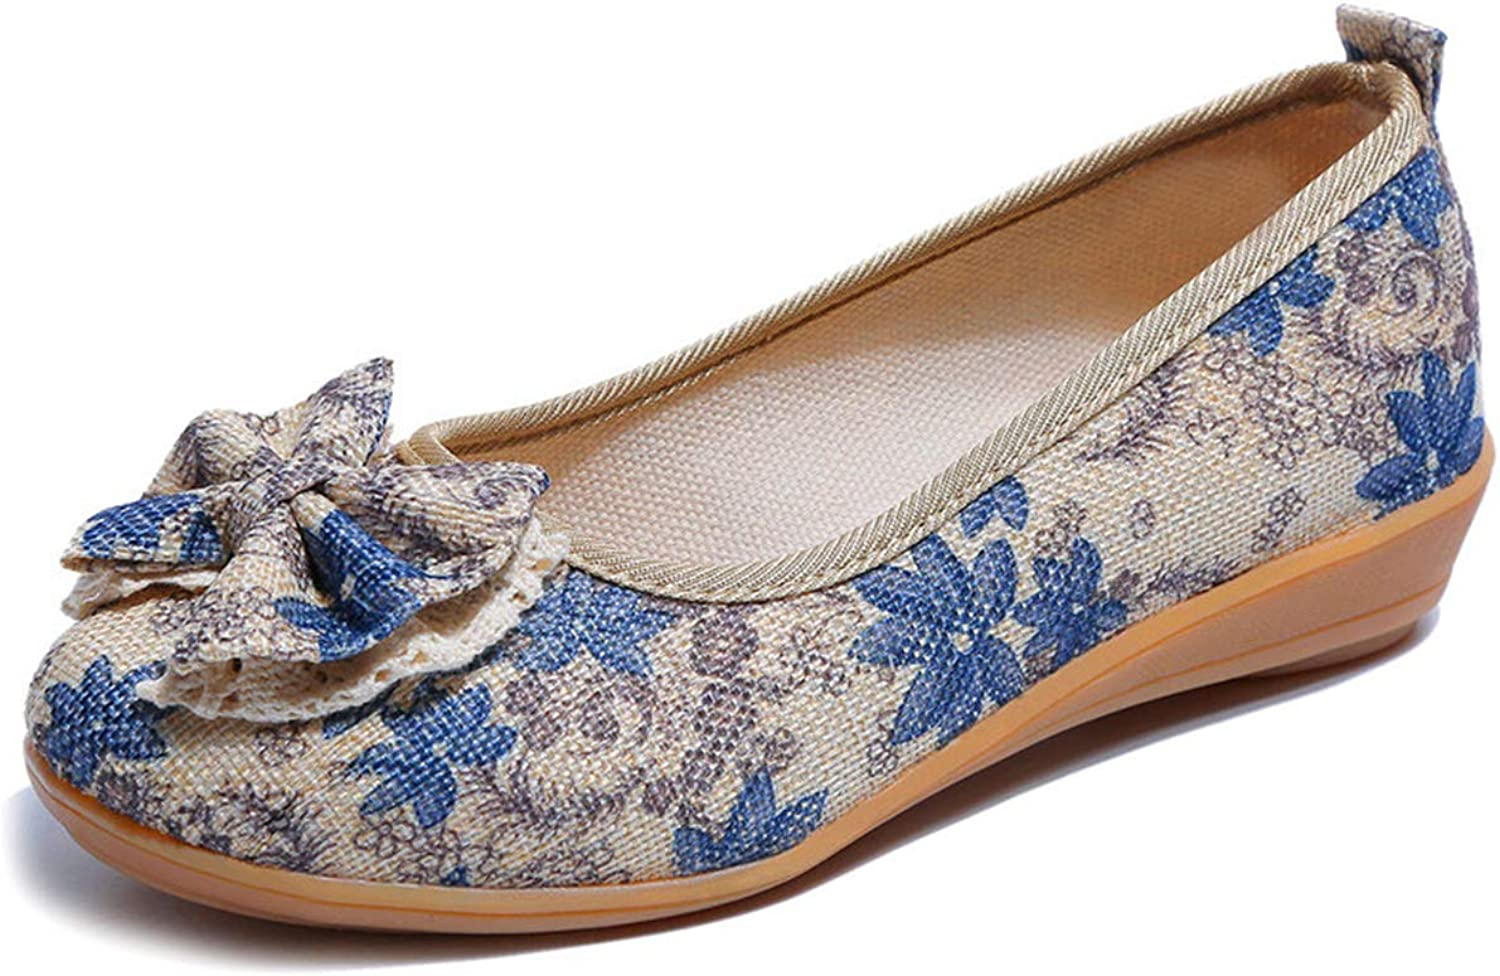 Owen Moll Women Flats, Flowers Slip-On Printing Round Toe shoes 4 colors